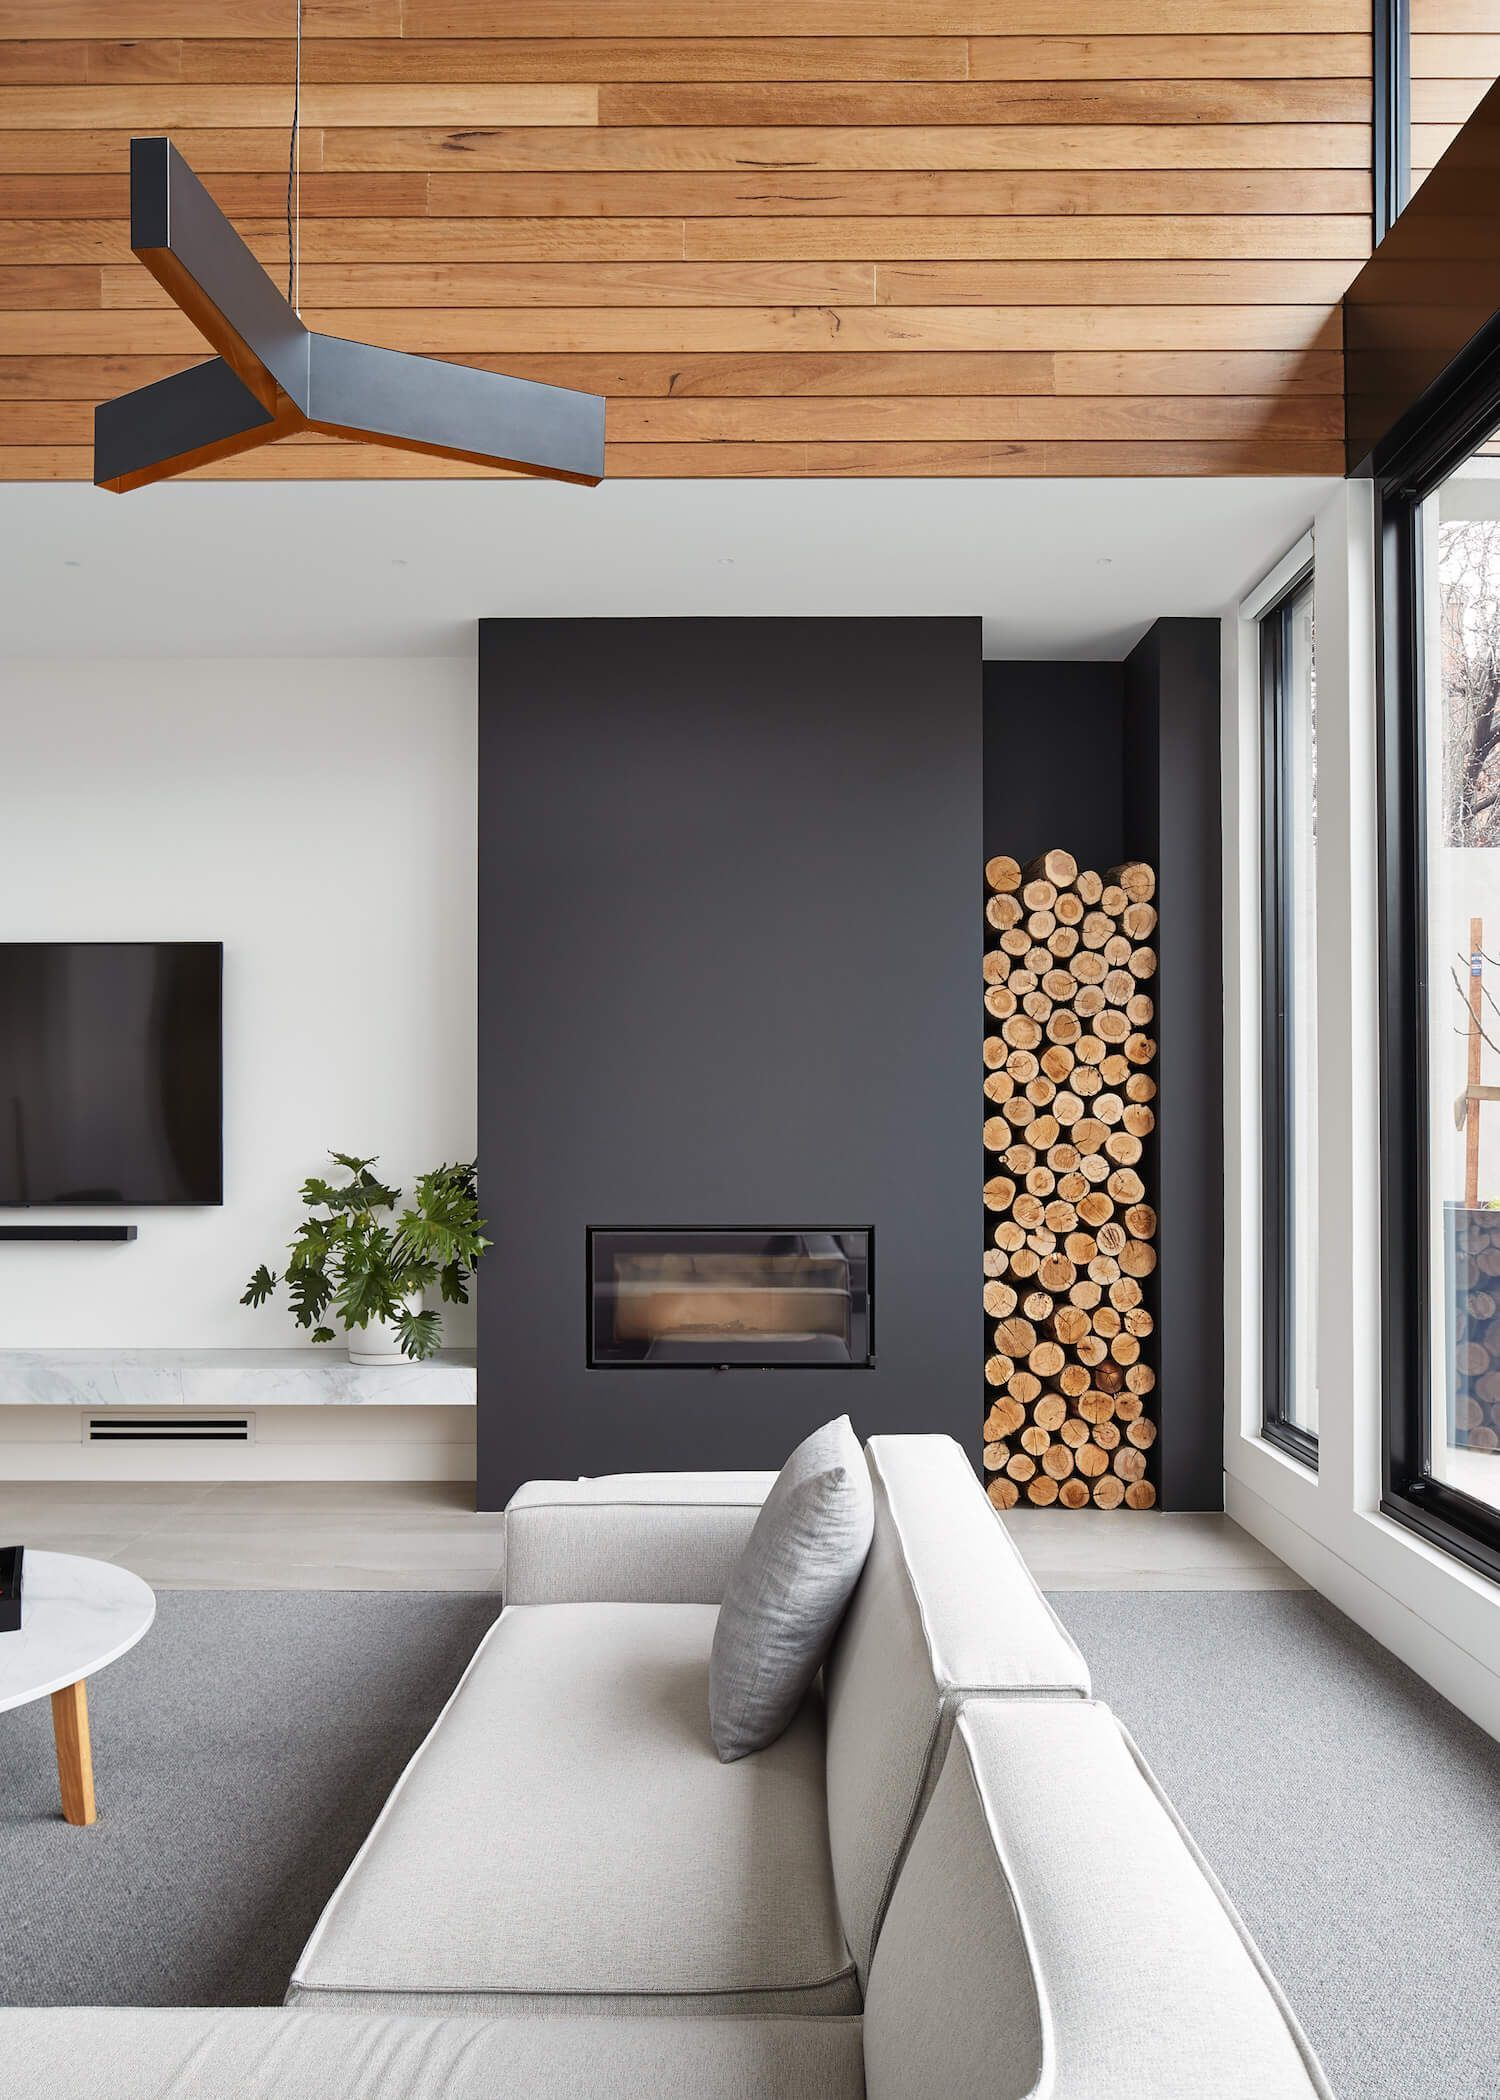 Home grill design bilder bloomfield home by fgr architects  office designs  pinterest